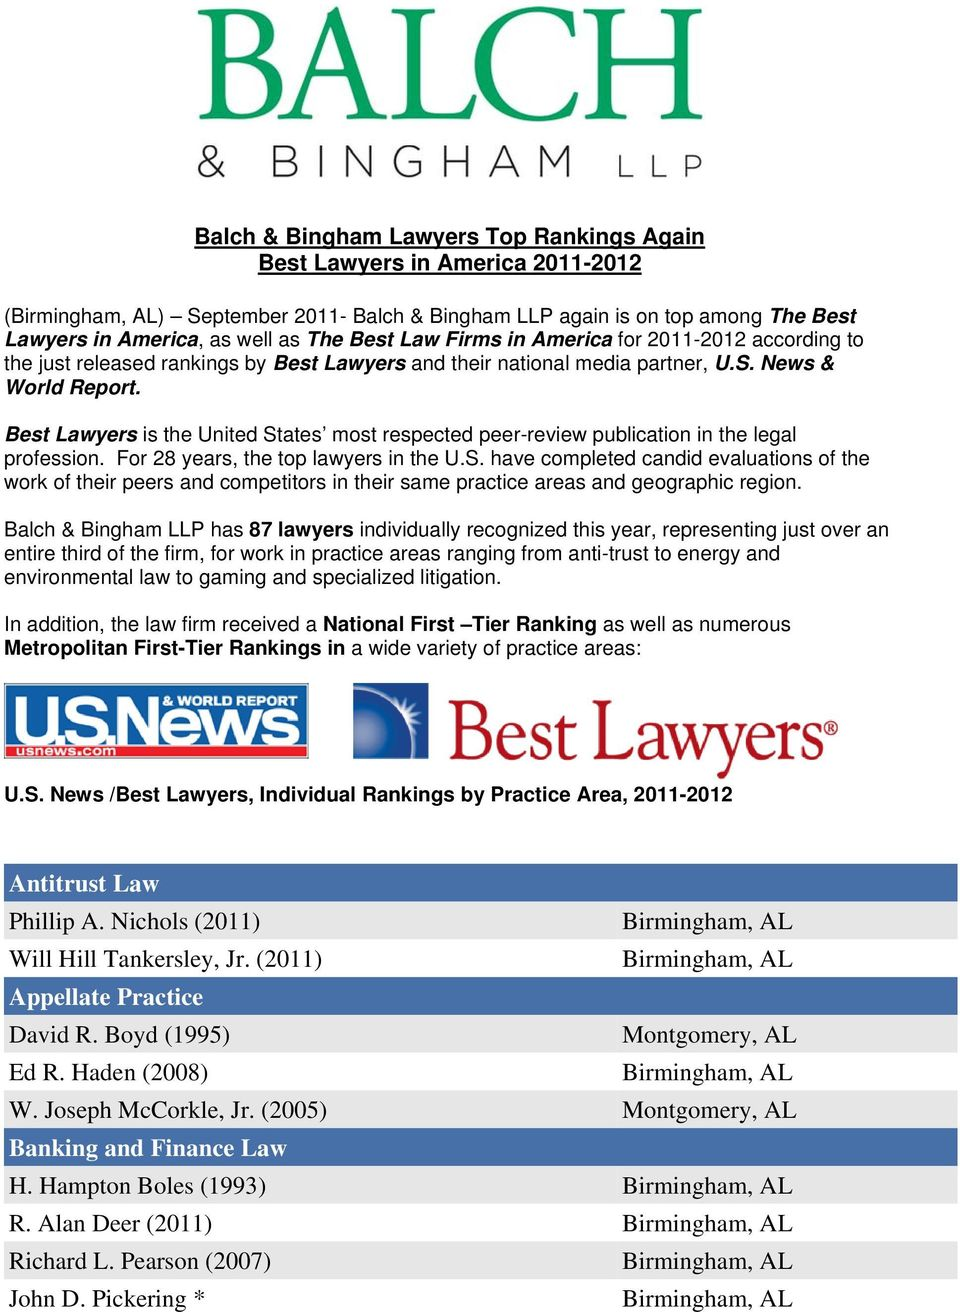 Best Lawyers is the United States most respected peer-review publication in the legal profession. For 28 years, the top lawyers in the U.S. have completed candid evaluations of the work of their peers and competitors in their same practice areas and geographic region.